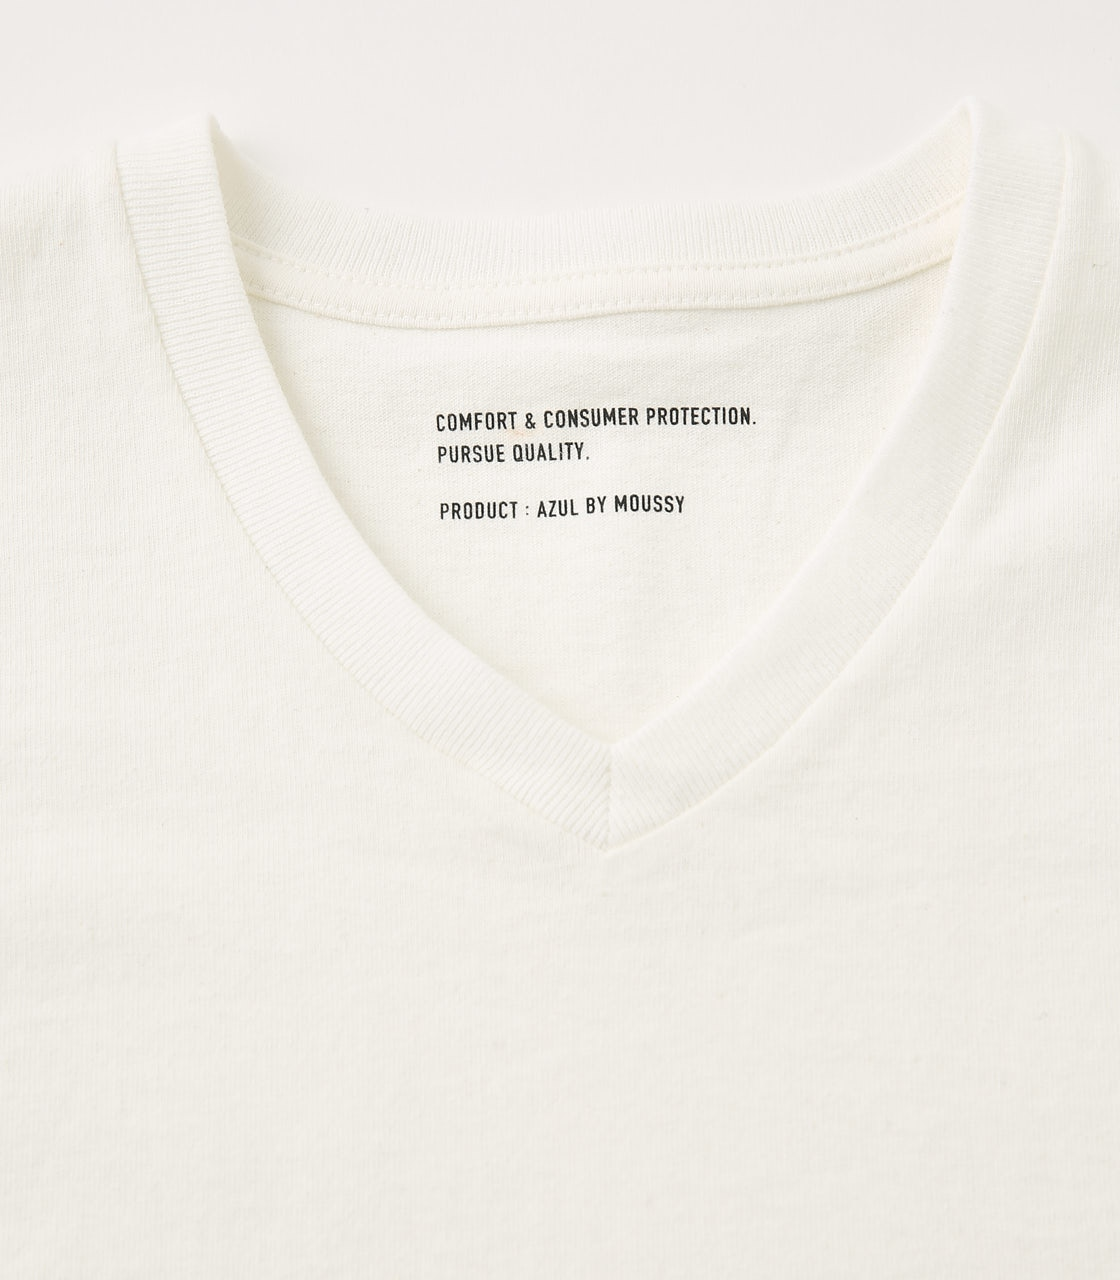 【AZUL BY MOUSSY】HEAVY WEIGHT Vネック T-SHIRT 詳細画像 WHT 3